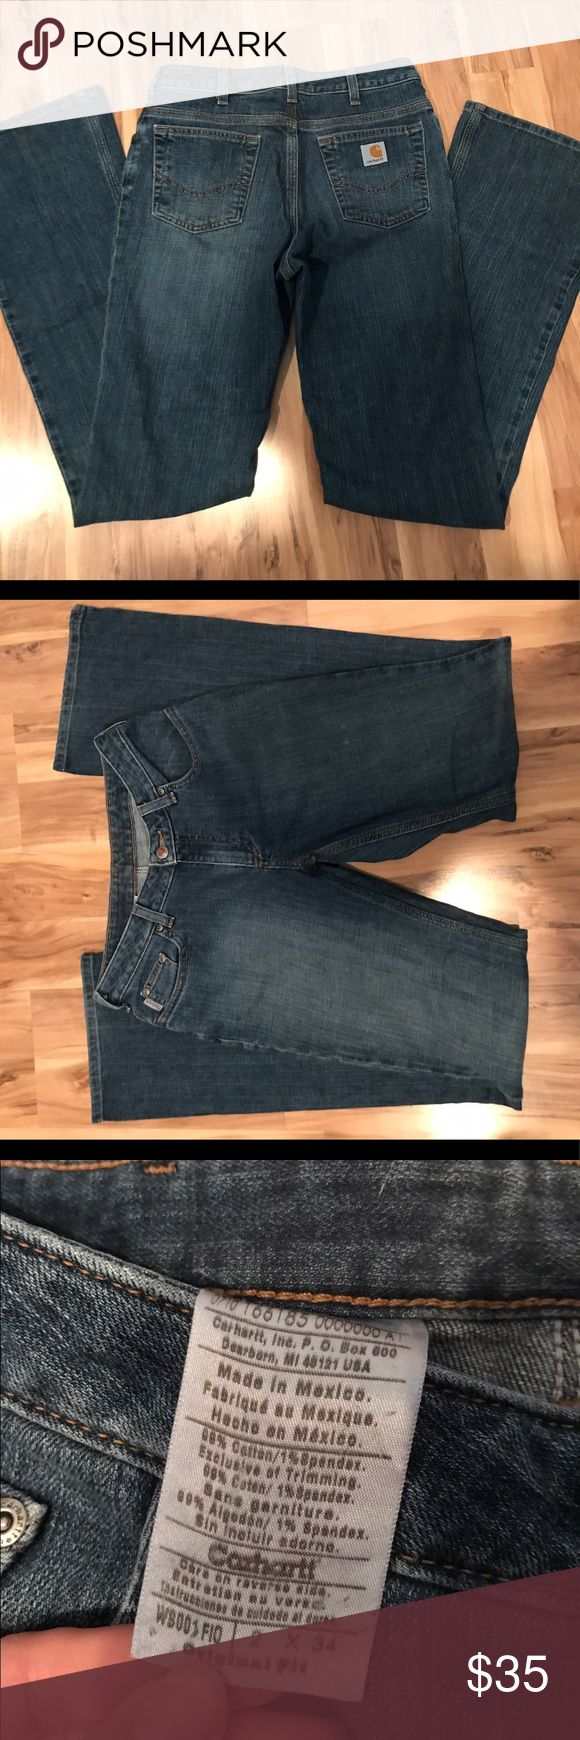 Carhartt Jeans Smoke free home, jeans in Excellent condition. Only worn a few times. Carhartt Jeans Boot Cut